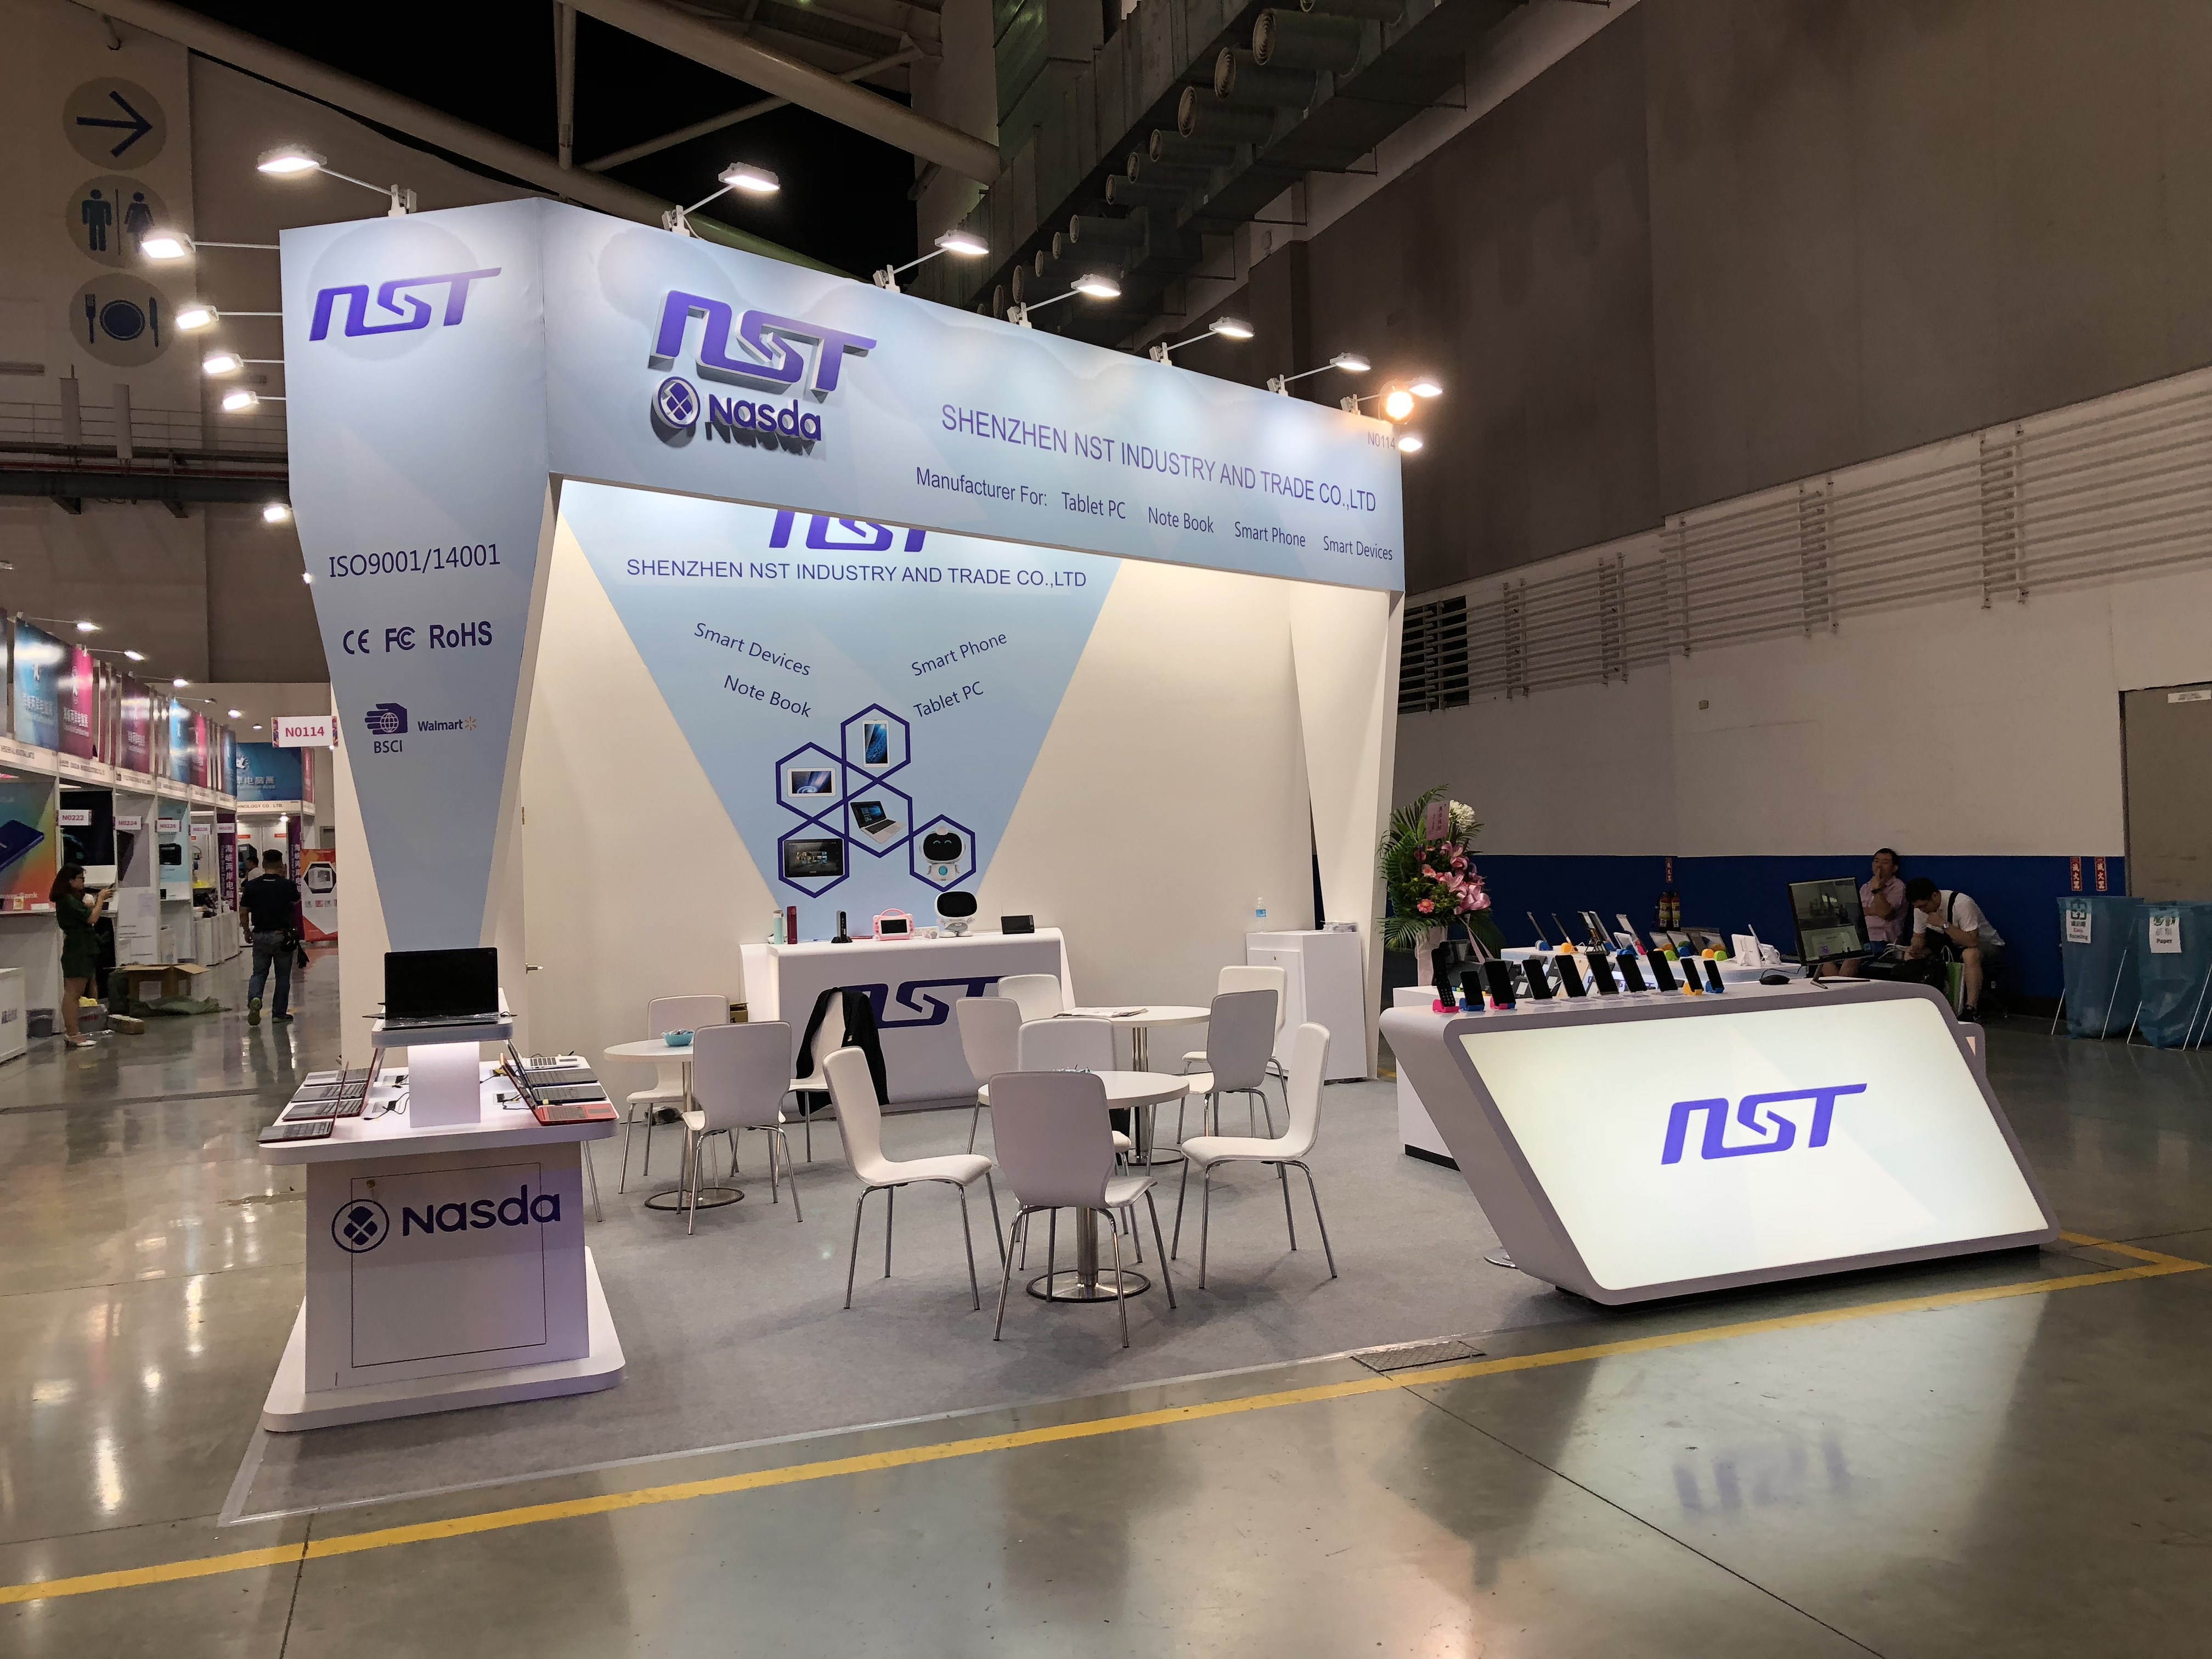 Booth site N0114